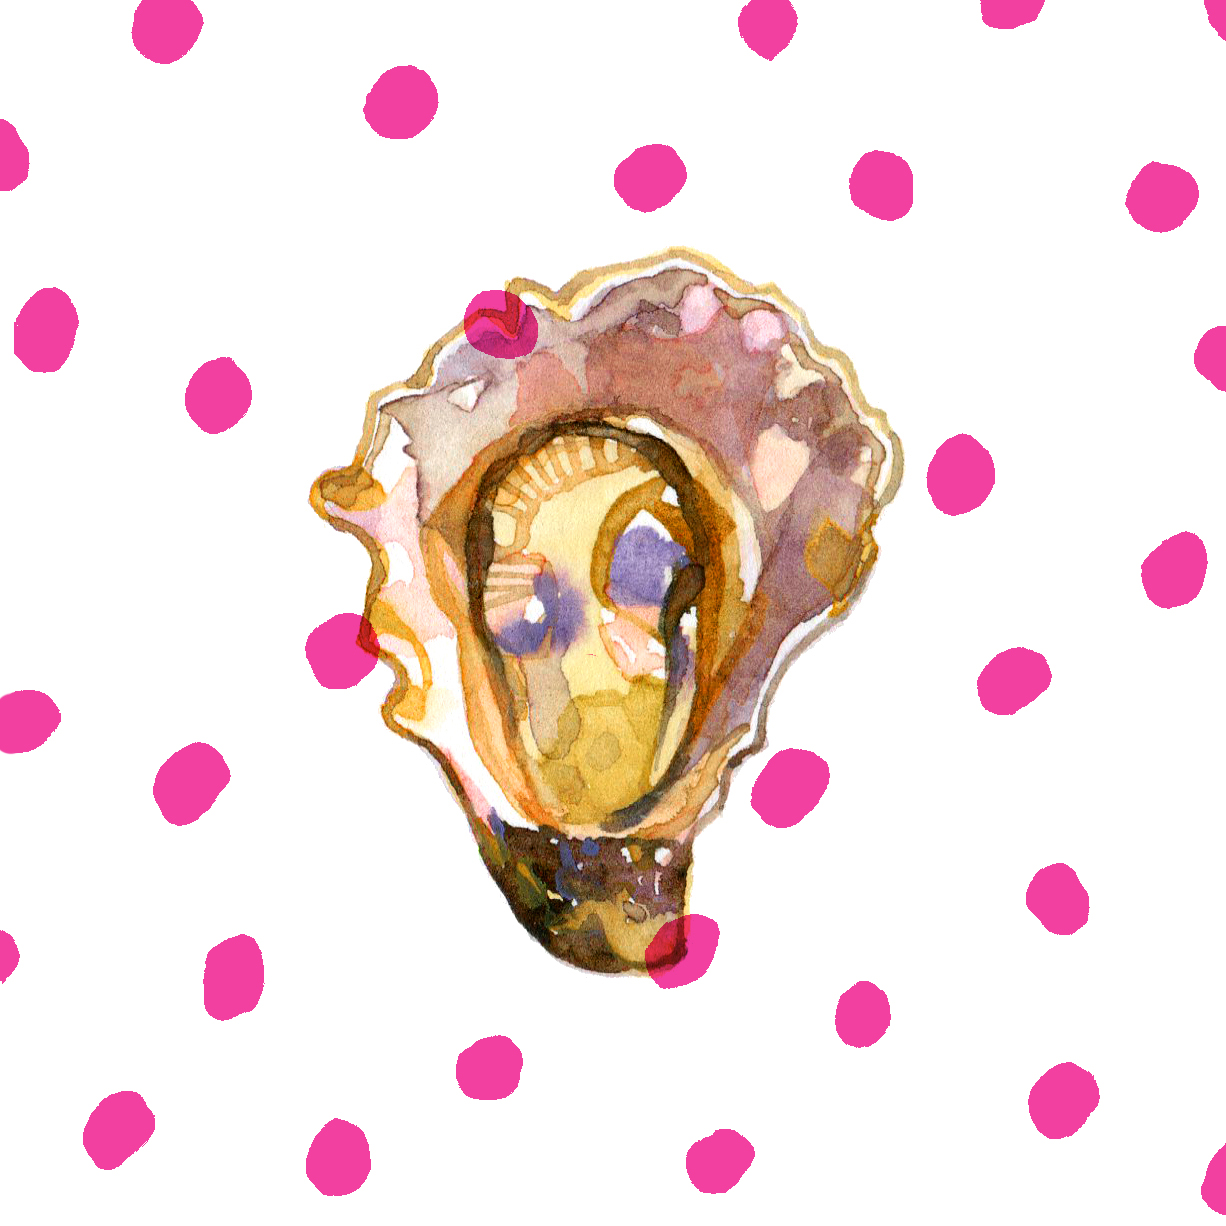 Oyster_with dots.jpg